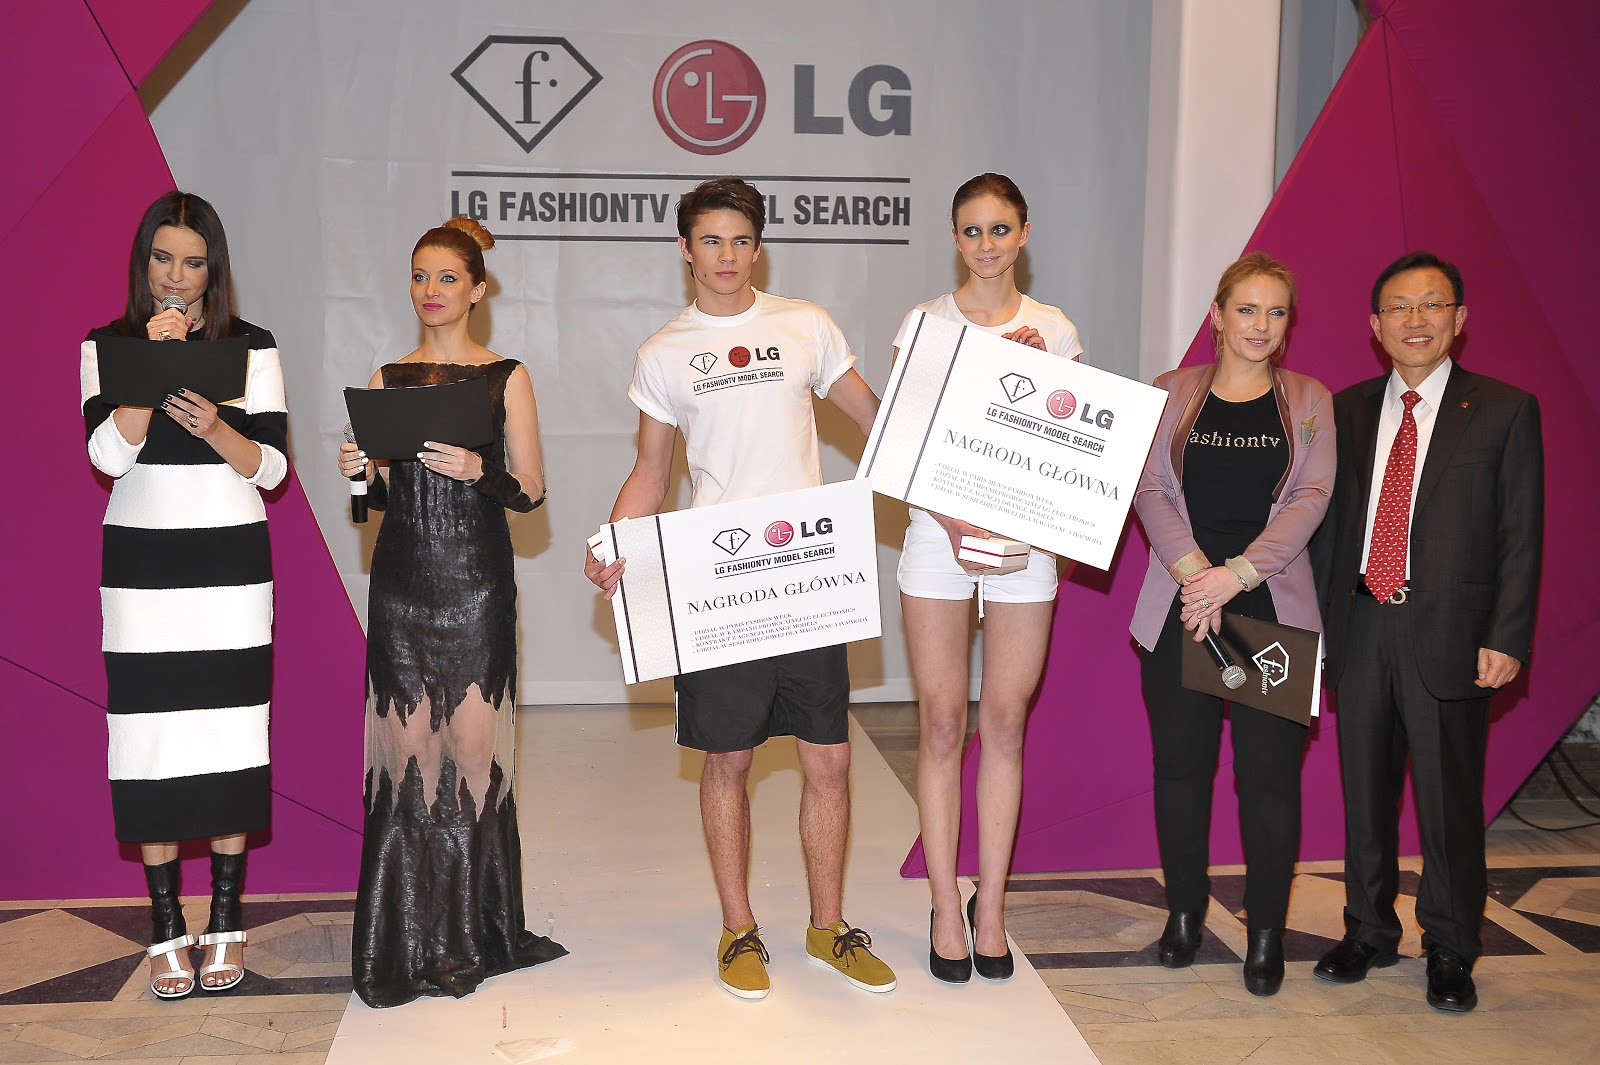 akpa20130130_lg_fashion_tv_3027.jpg